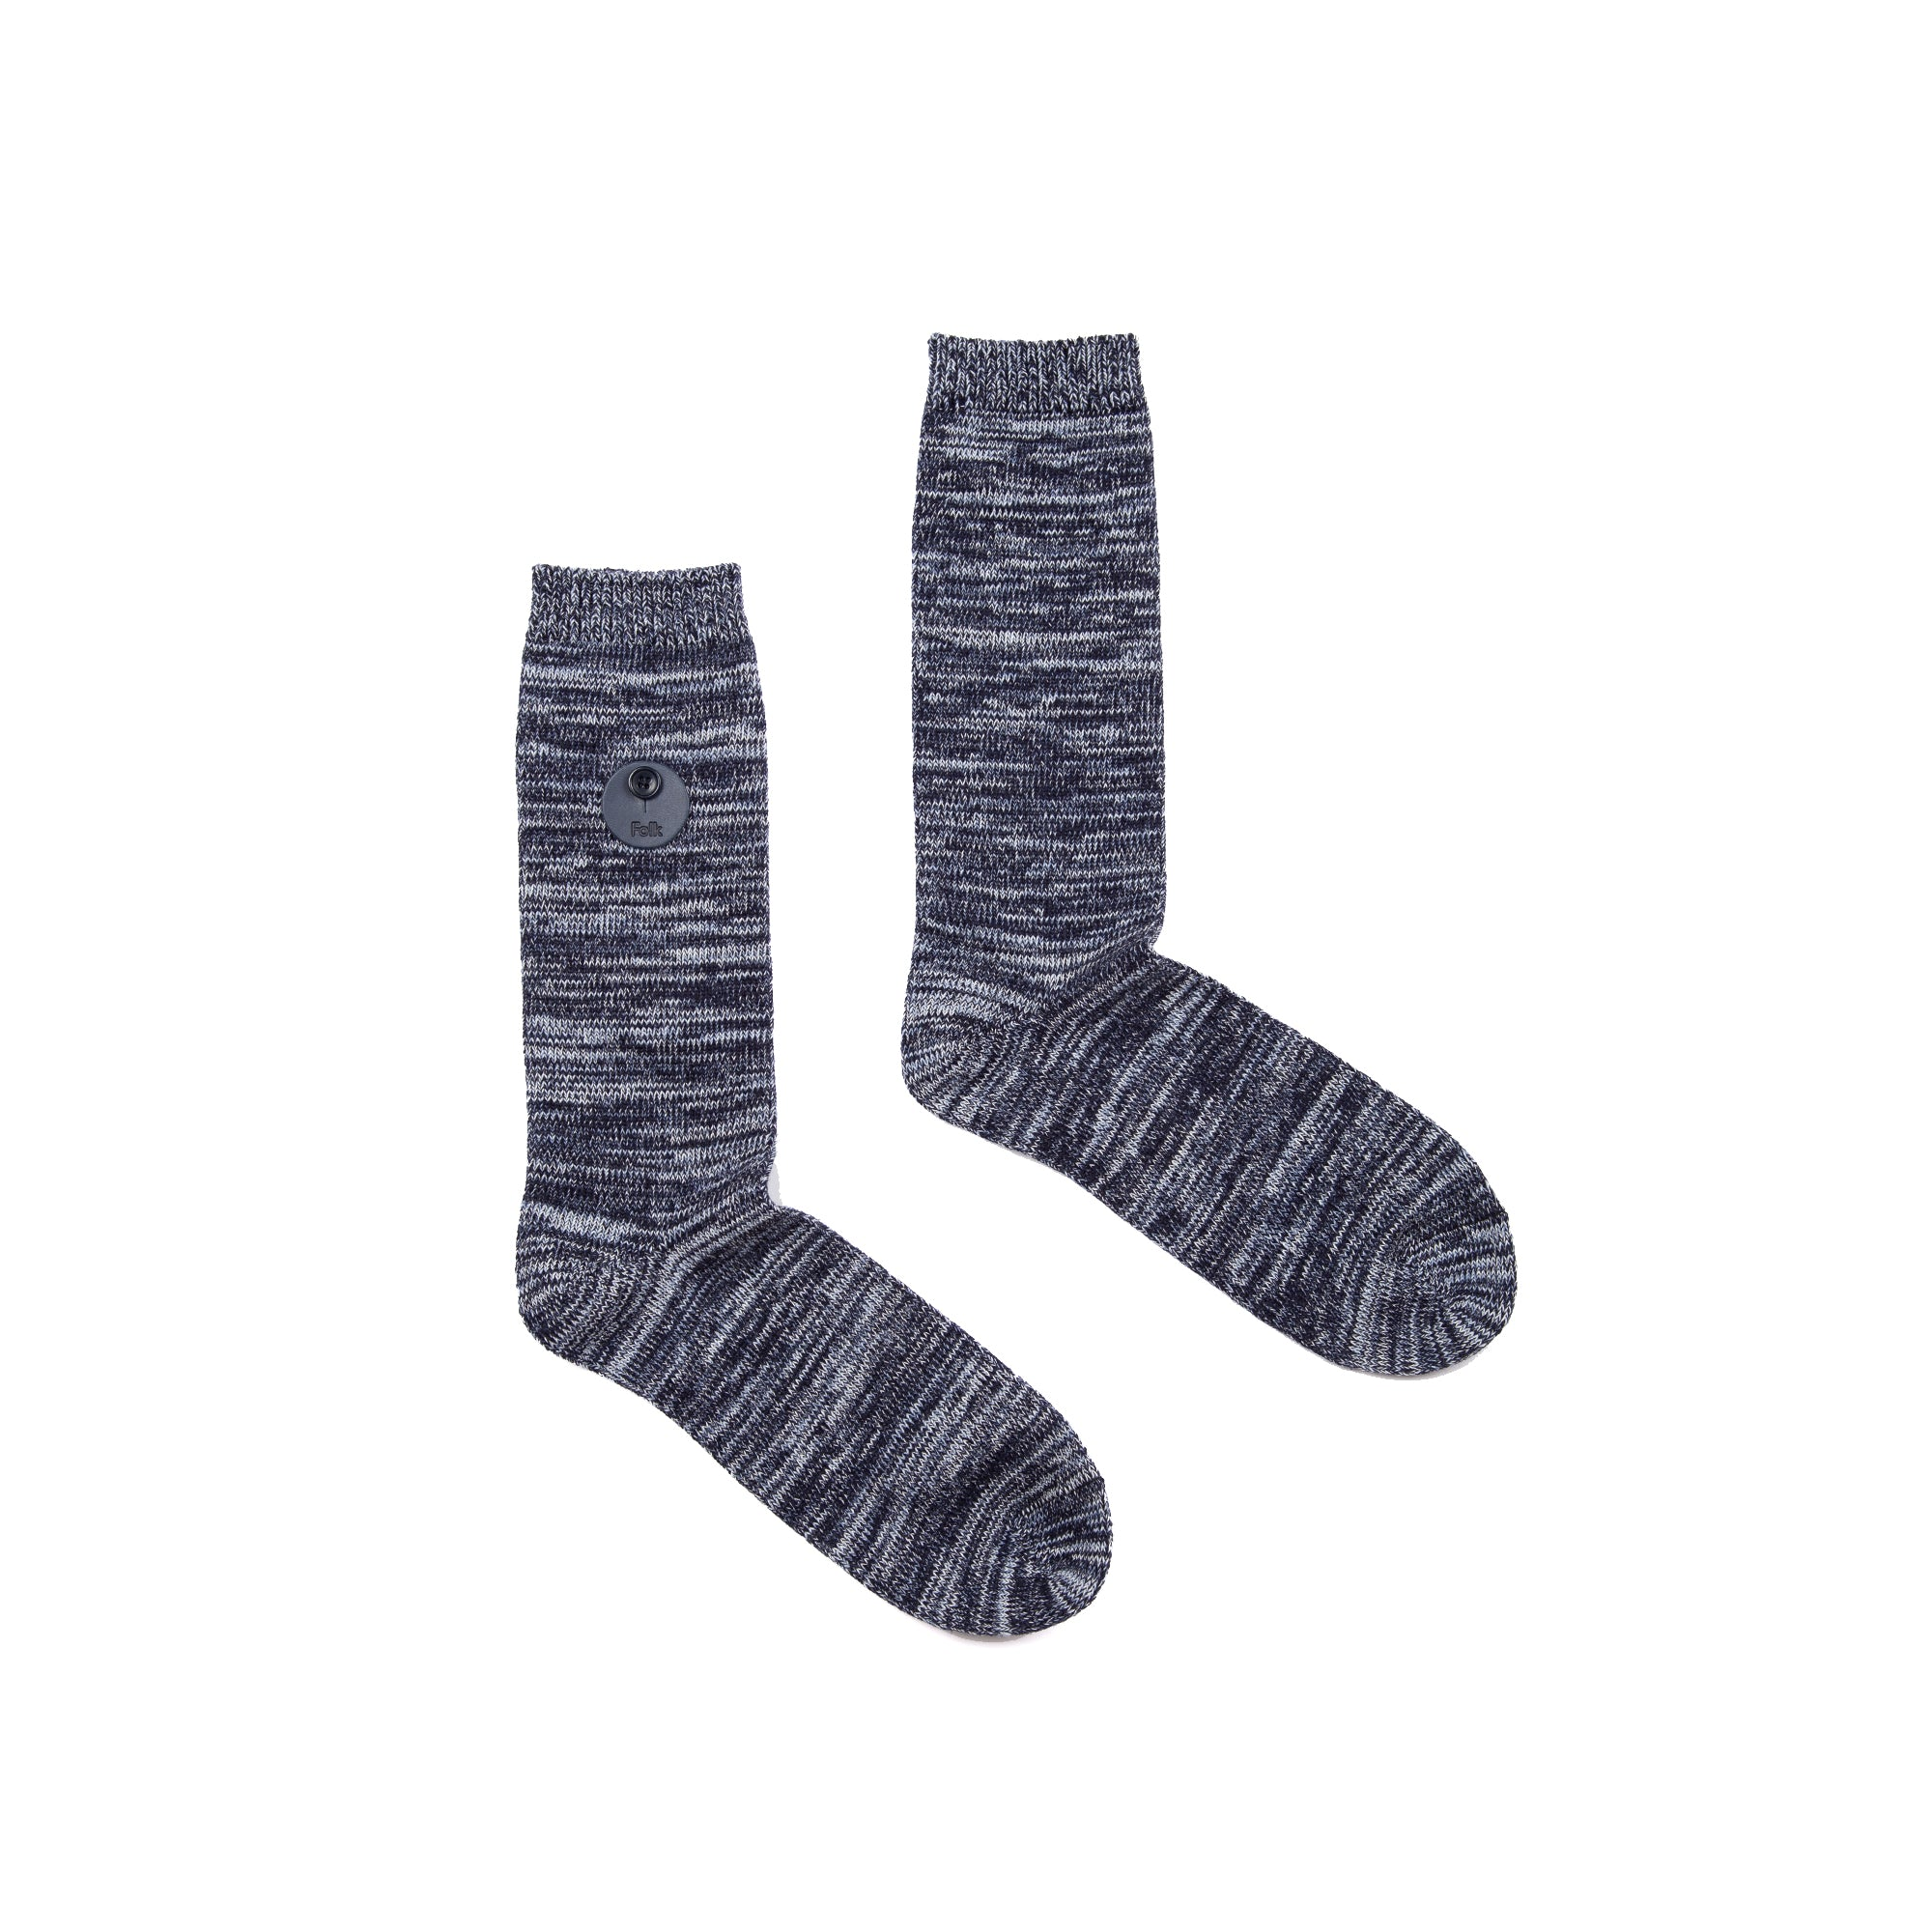 Melange Socks - Soft Blue Melange